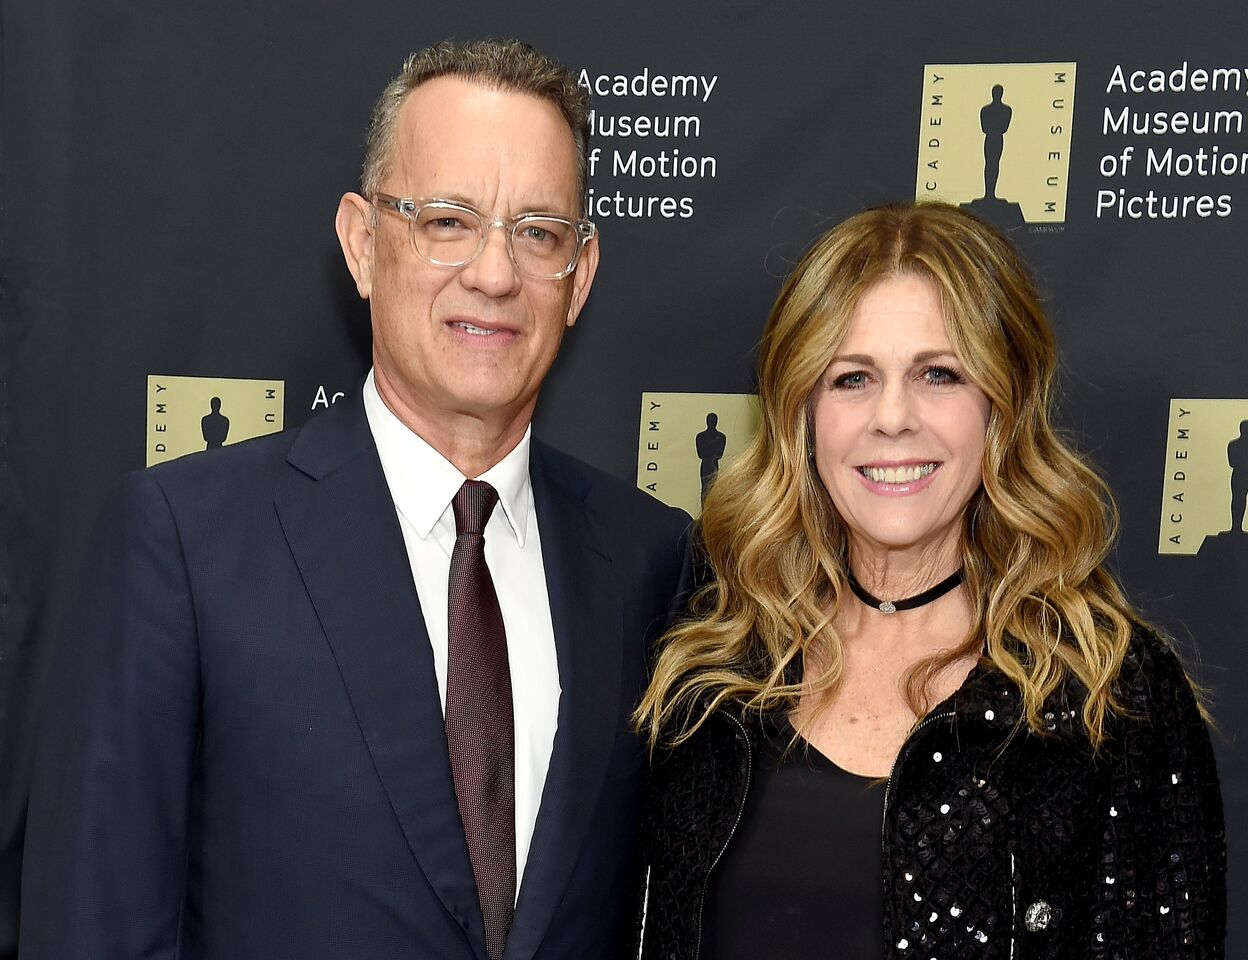 Tom Hanks and Rita Wilson attend The Academy Museum Of Motion Pictures Unveiling of the Fully Restored Saban Building. |Photo: Getty Images